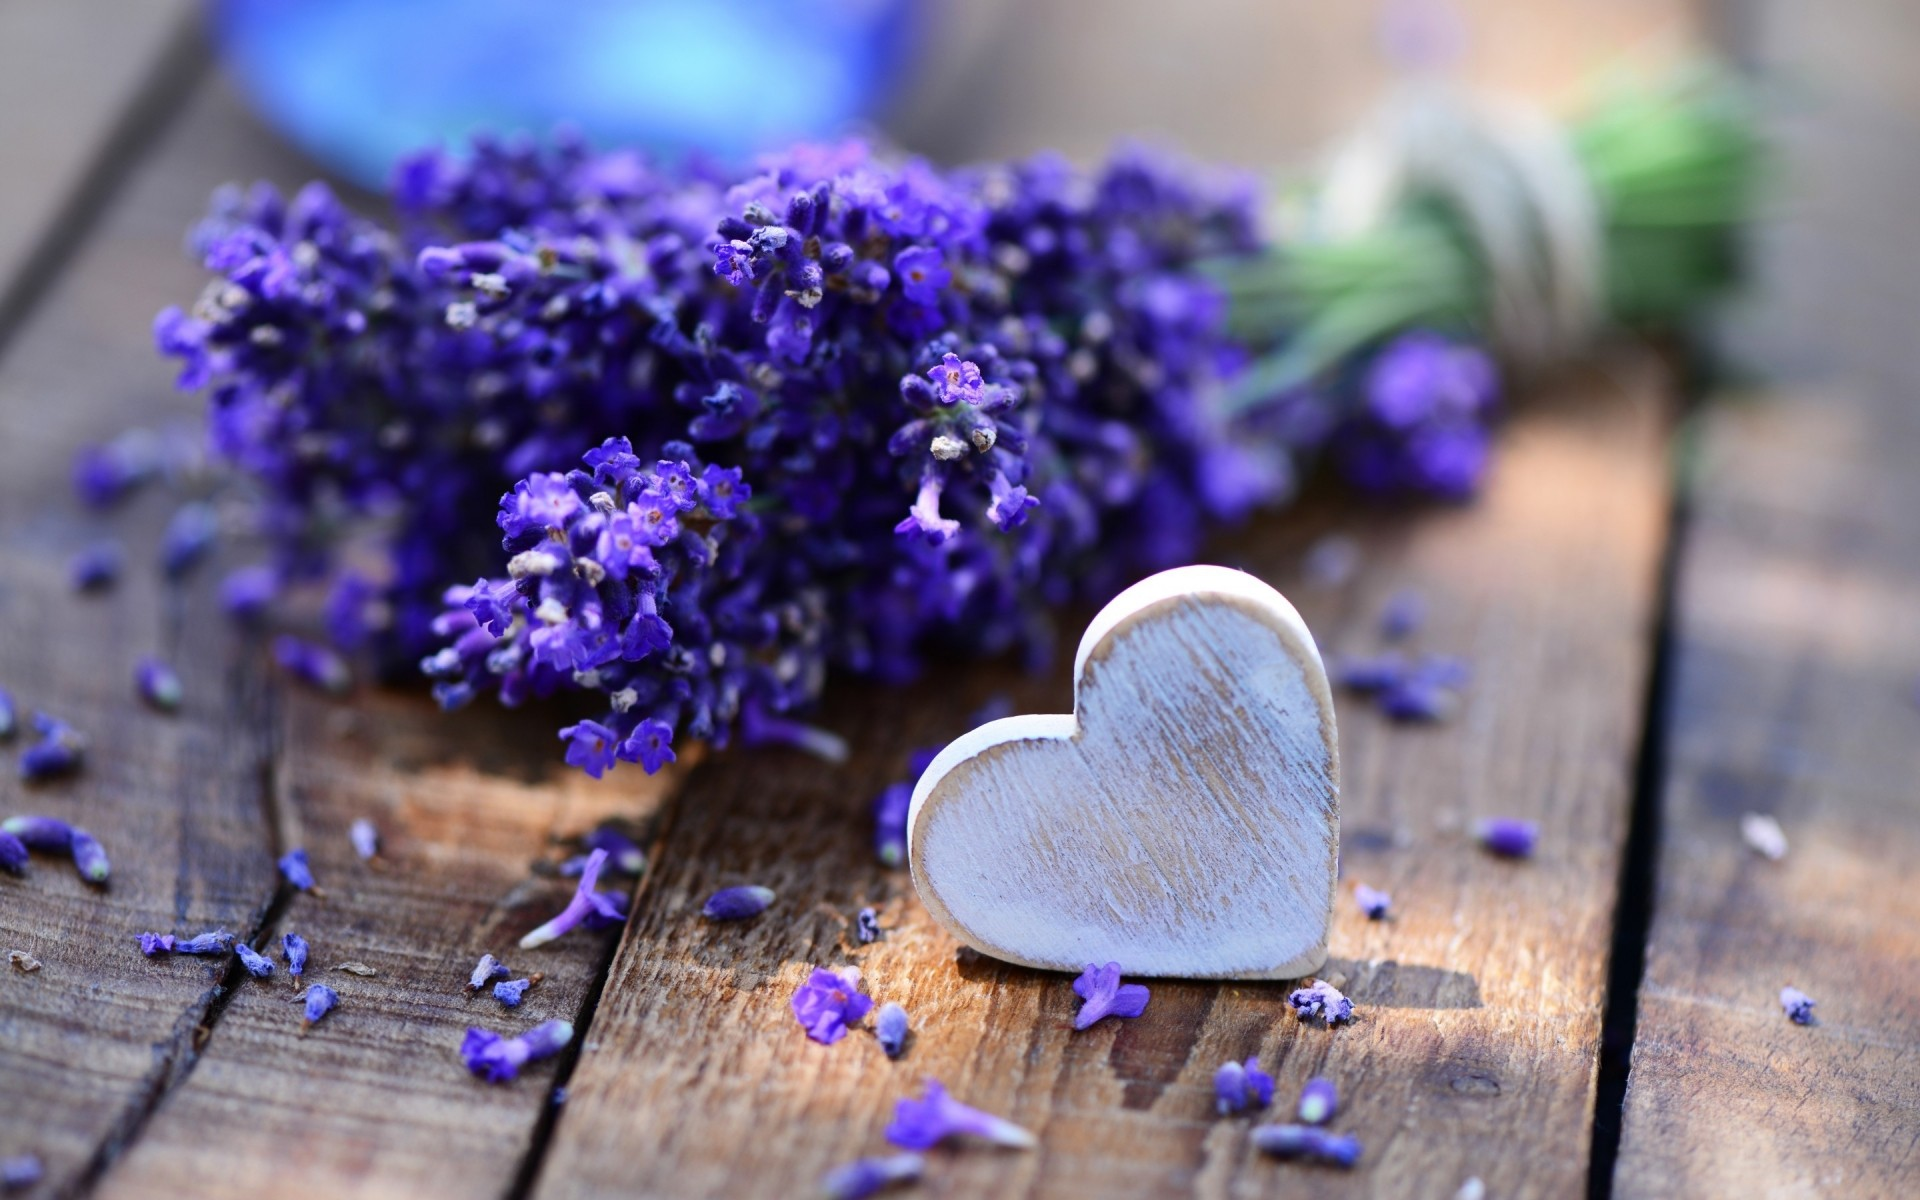 Lavender And Heart IPhone Wallpapers For Free